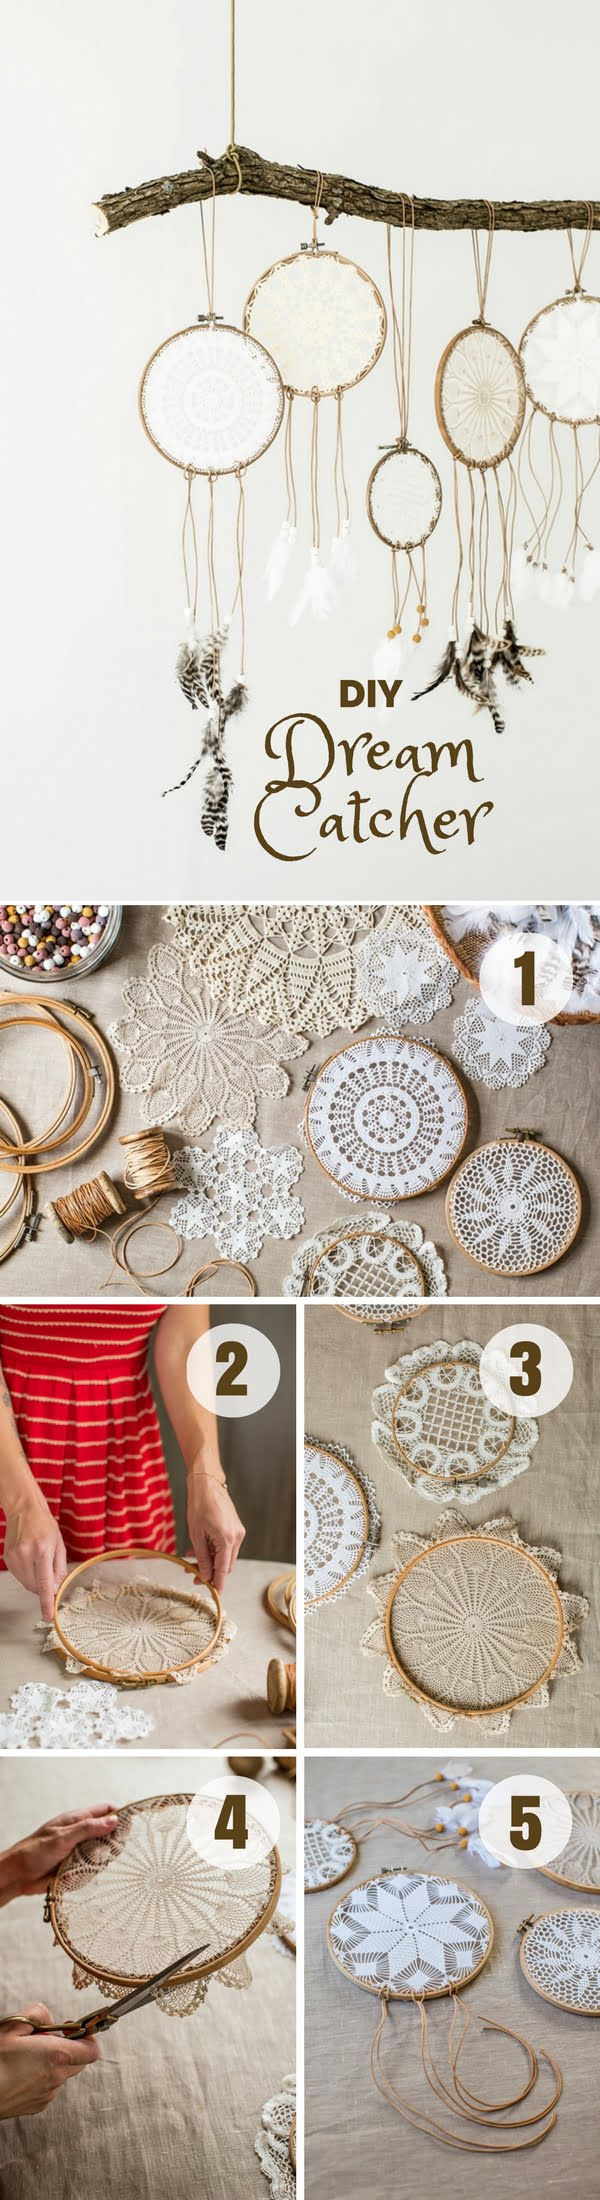 Check out how to easily make this DIY Dream Catcher @istandarddesign